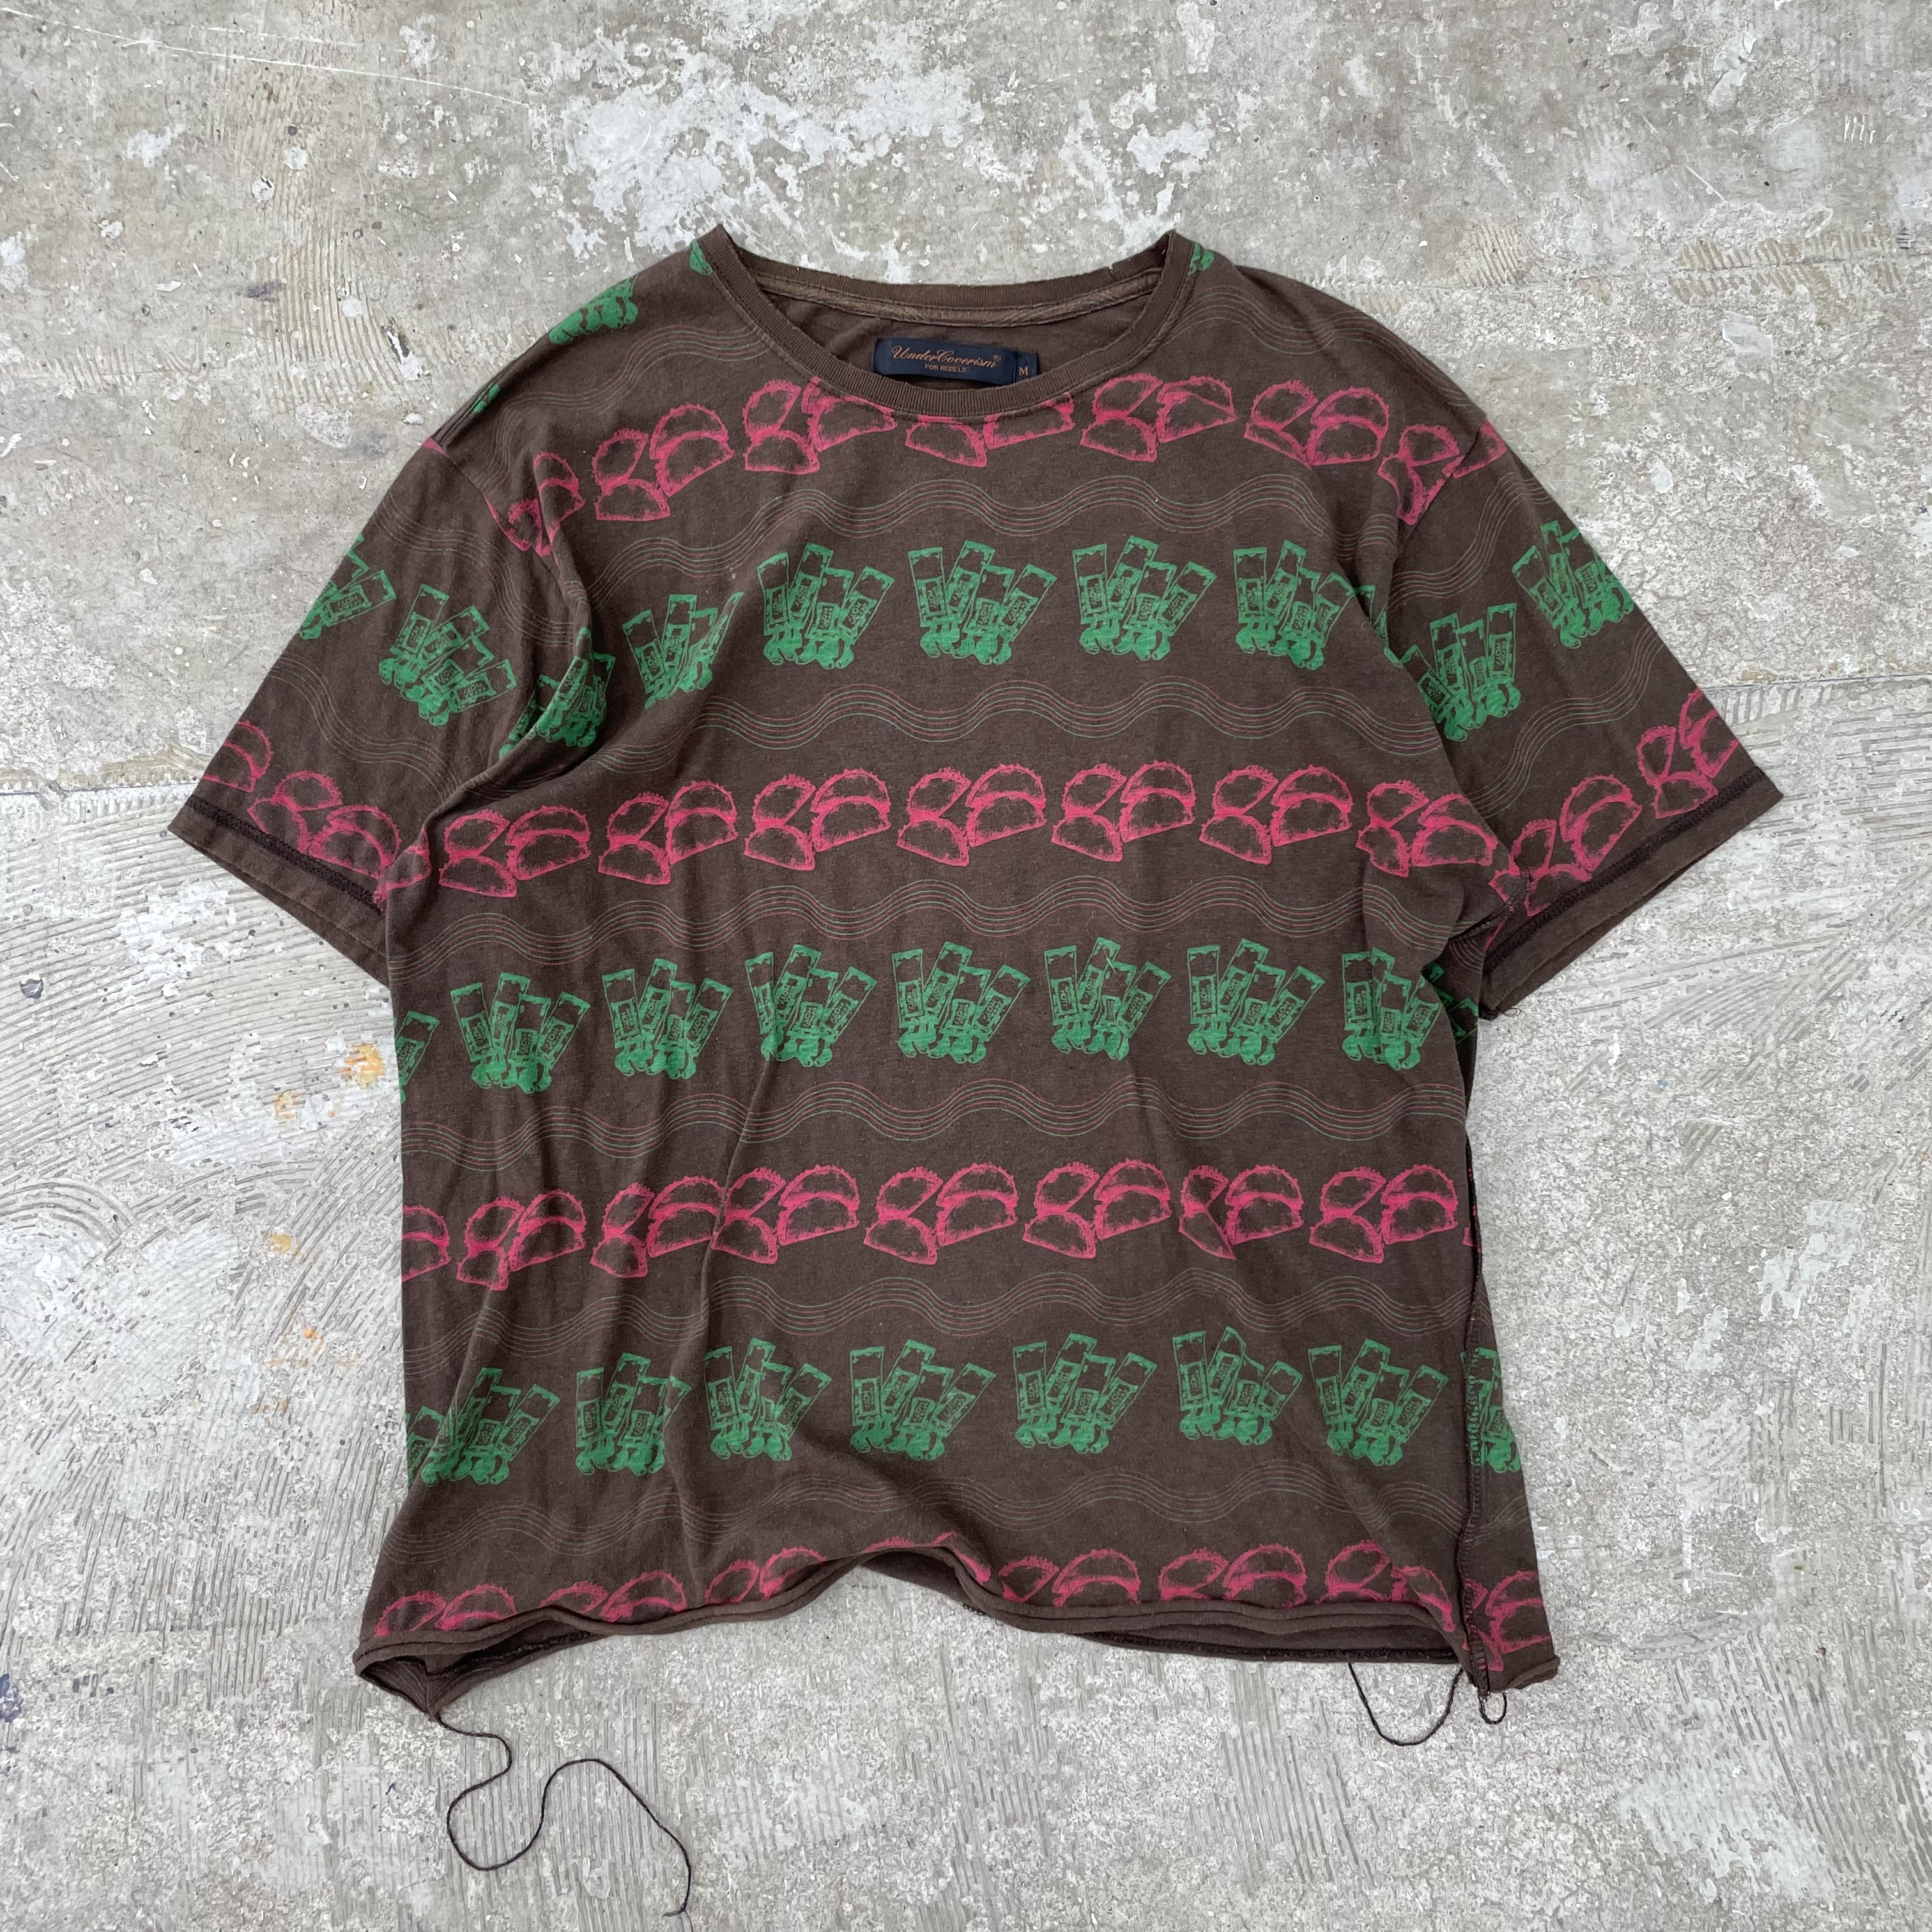 Undercover / Size M